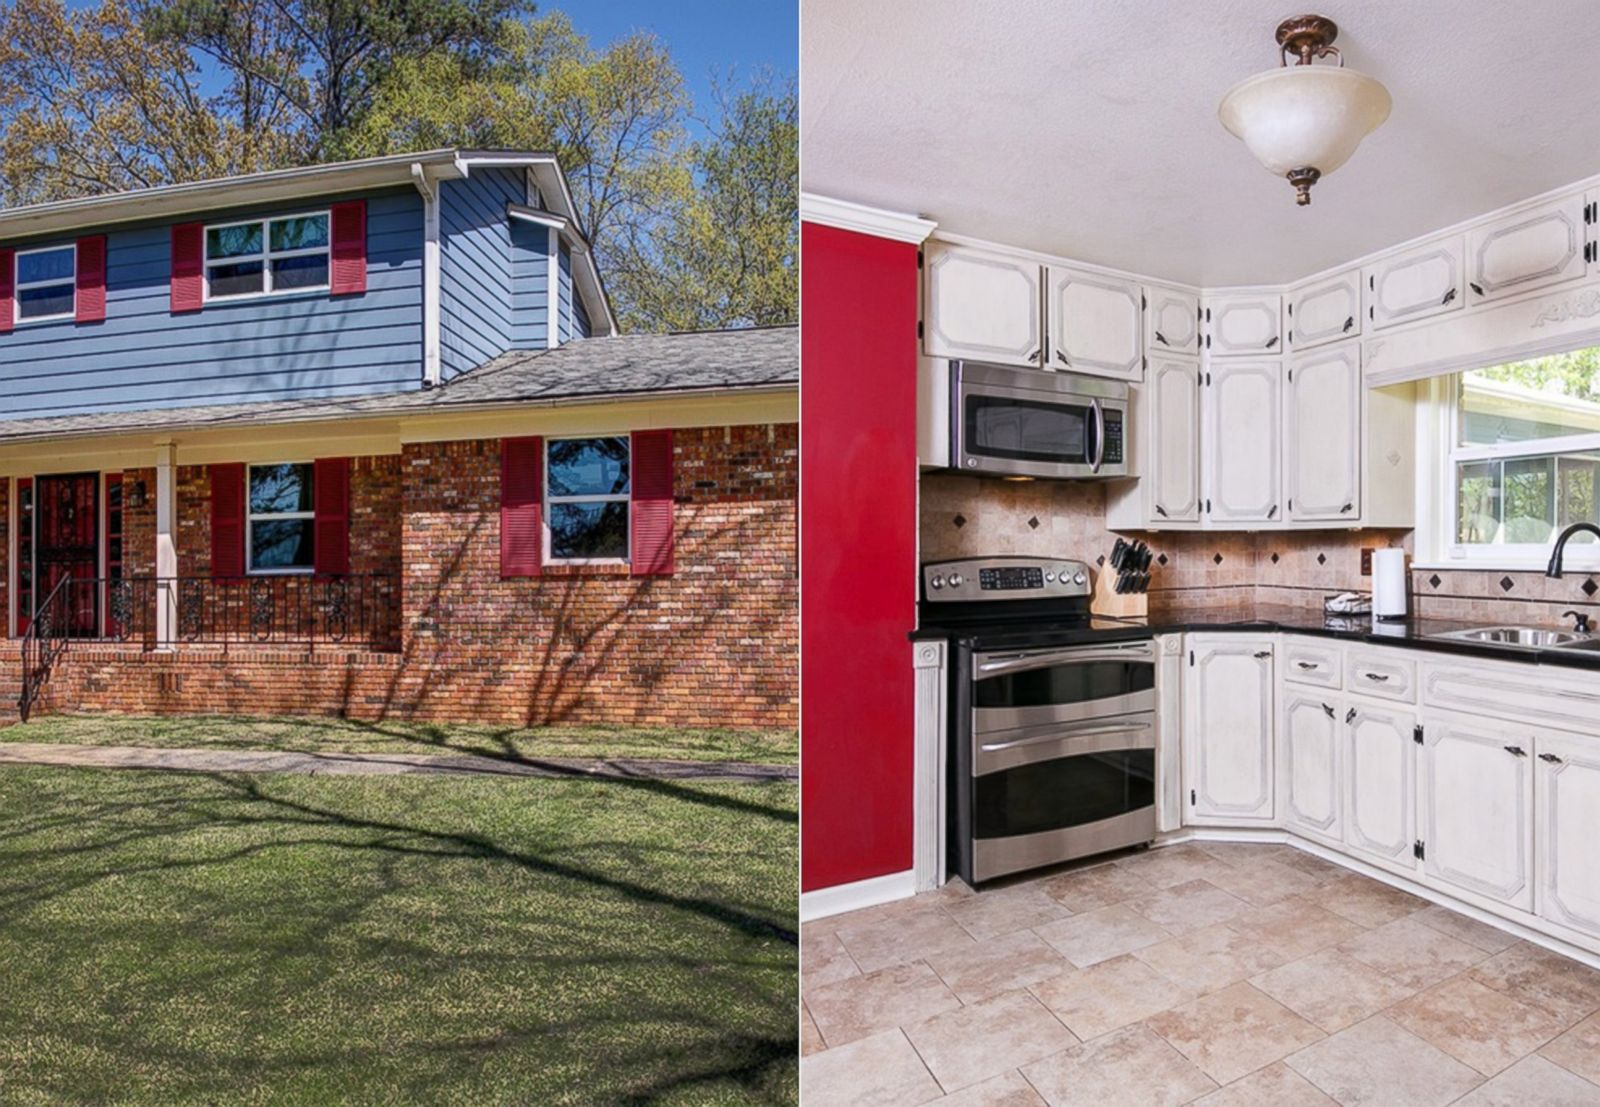 Homes for sale with 3 or more bedrooms under 200k photos for Houses for 200k